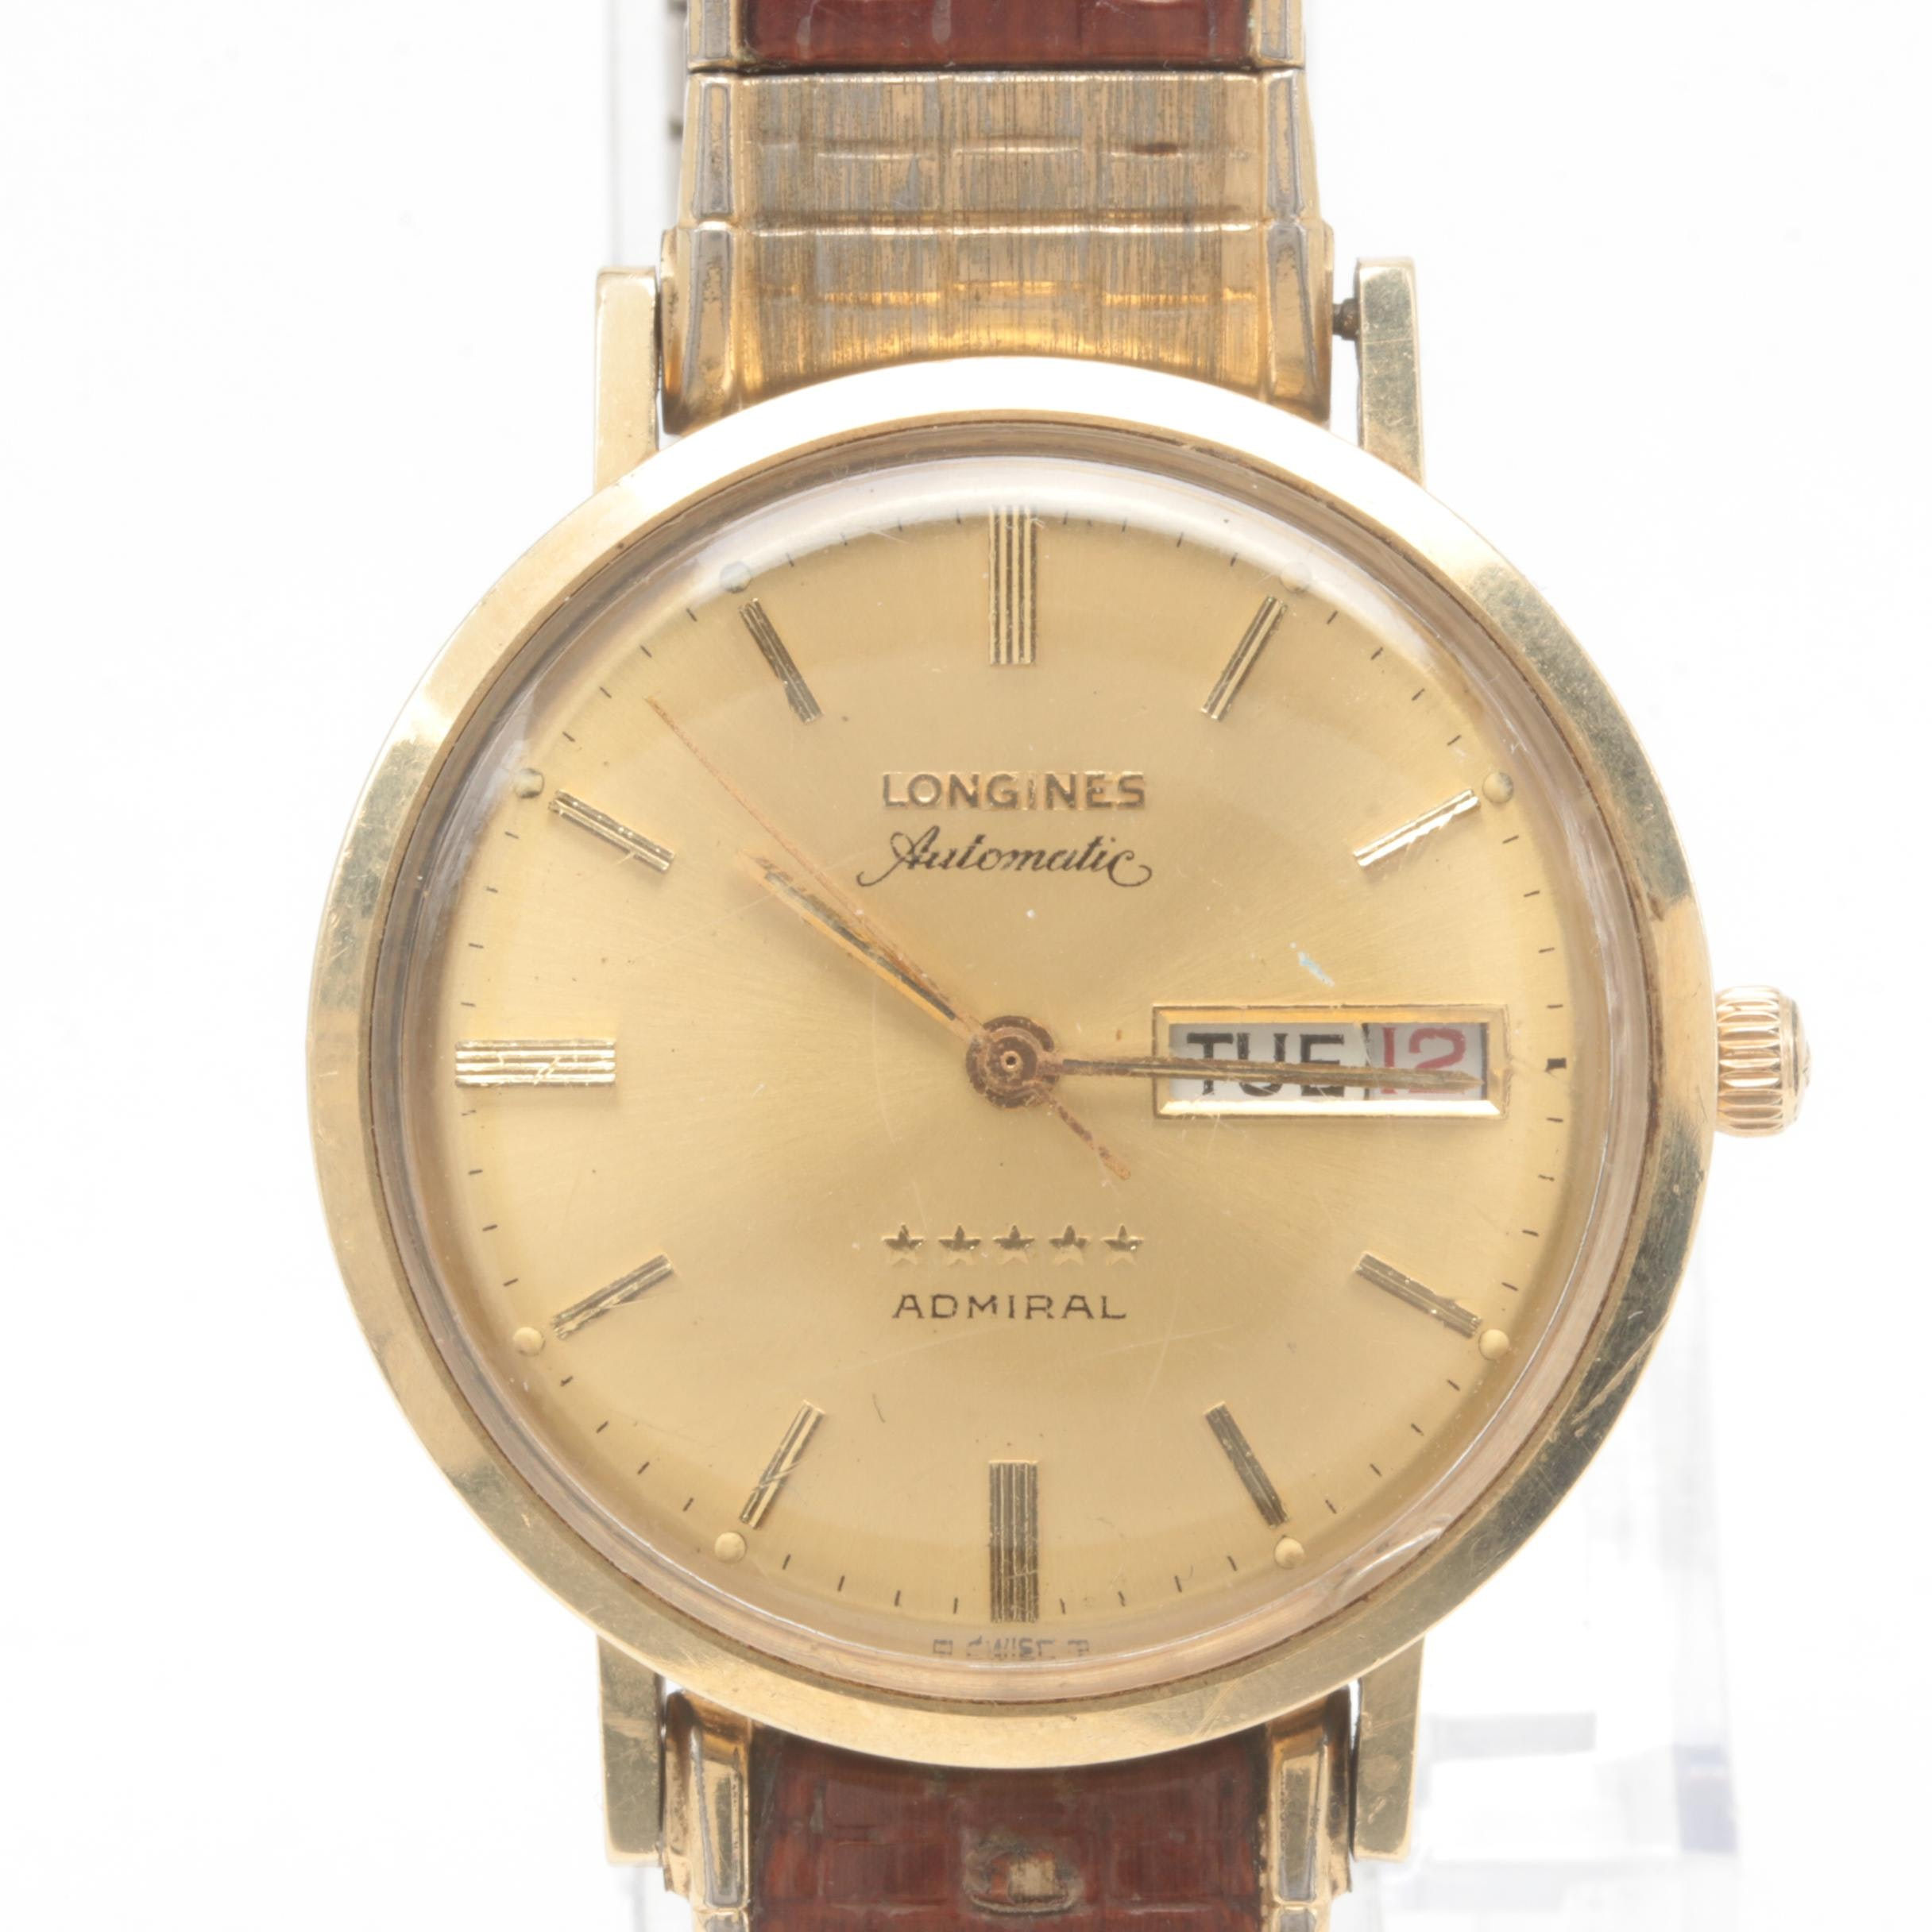 Longines 14K Yellow Gold Five Star Automatic Admiral Wristwatch